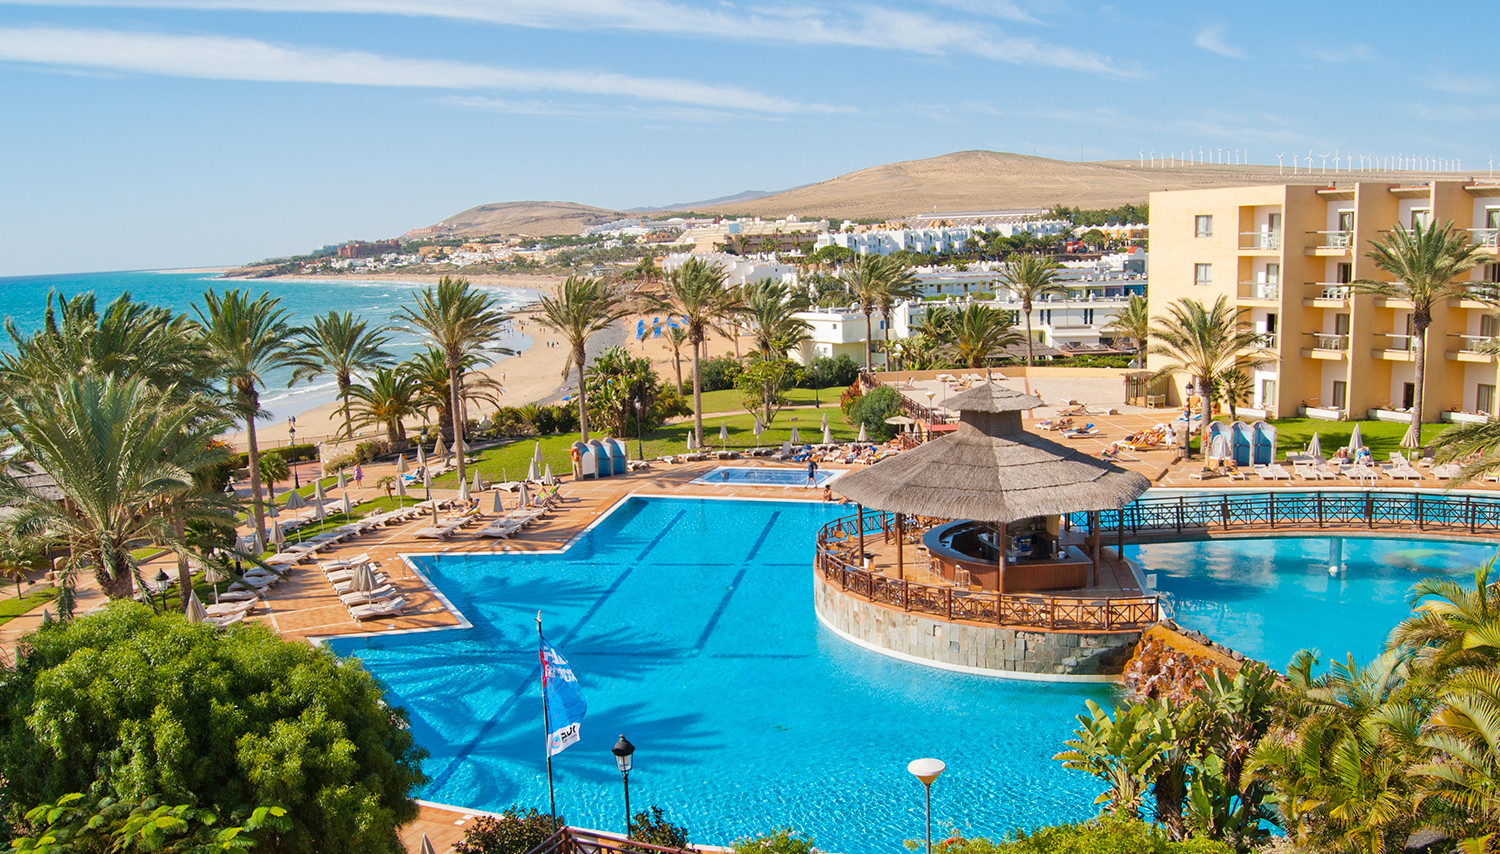 SBH Costa Calma Beach Resort (Fuerteventura, Kanaari saared)